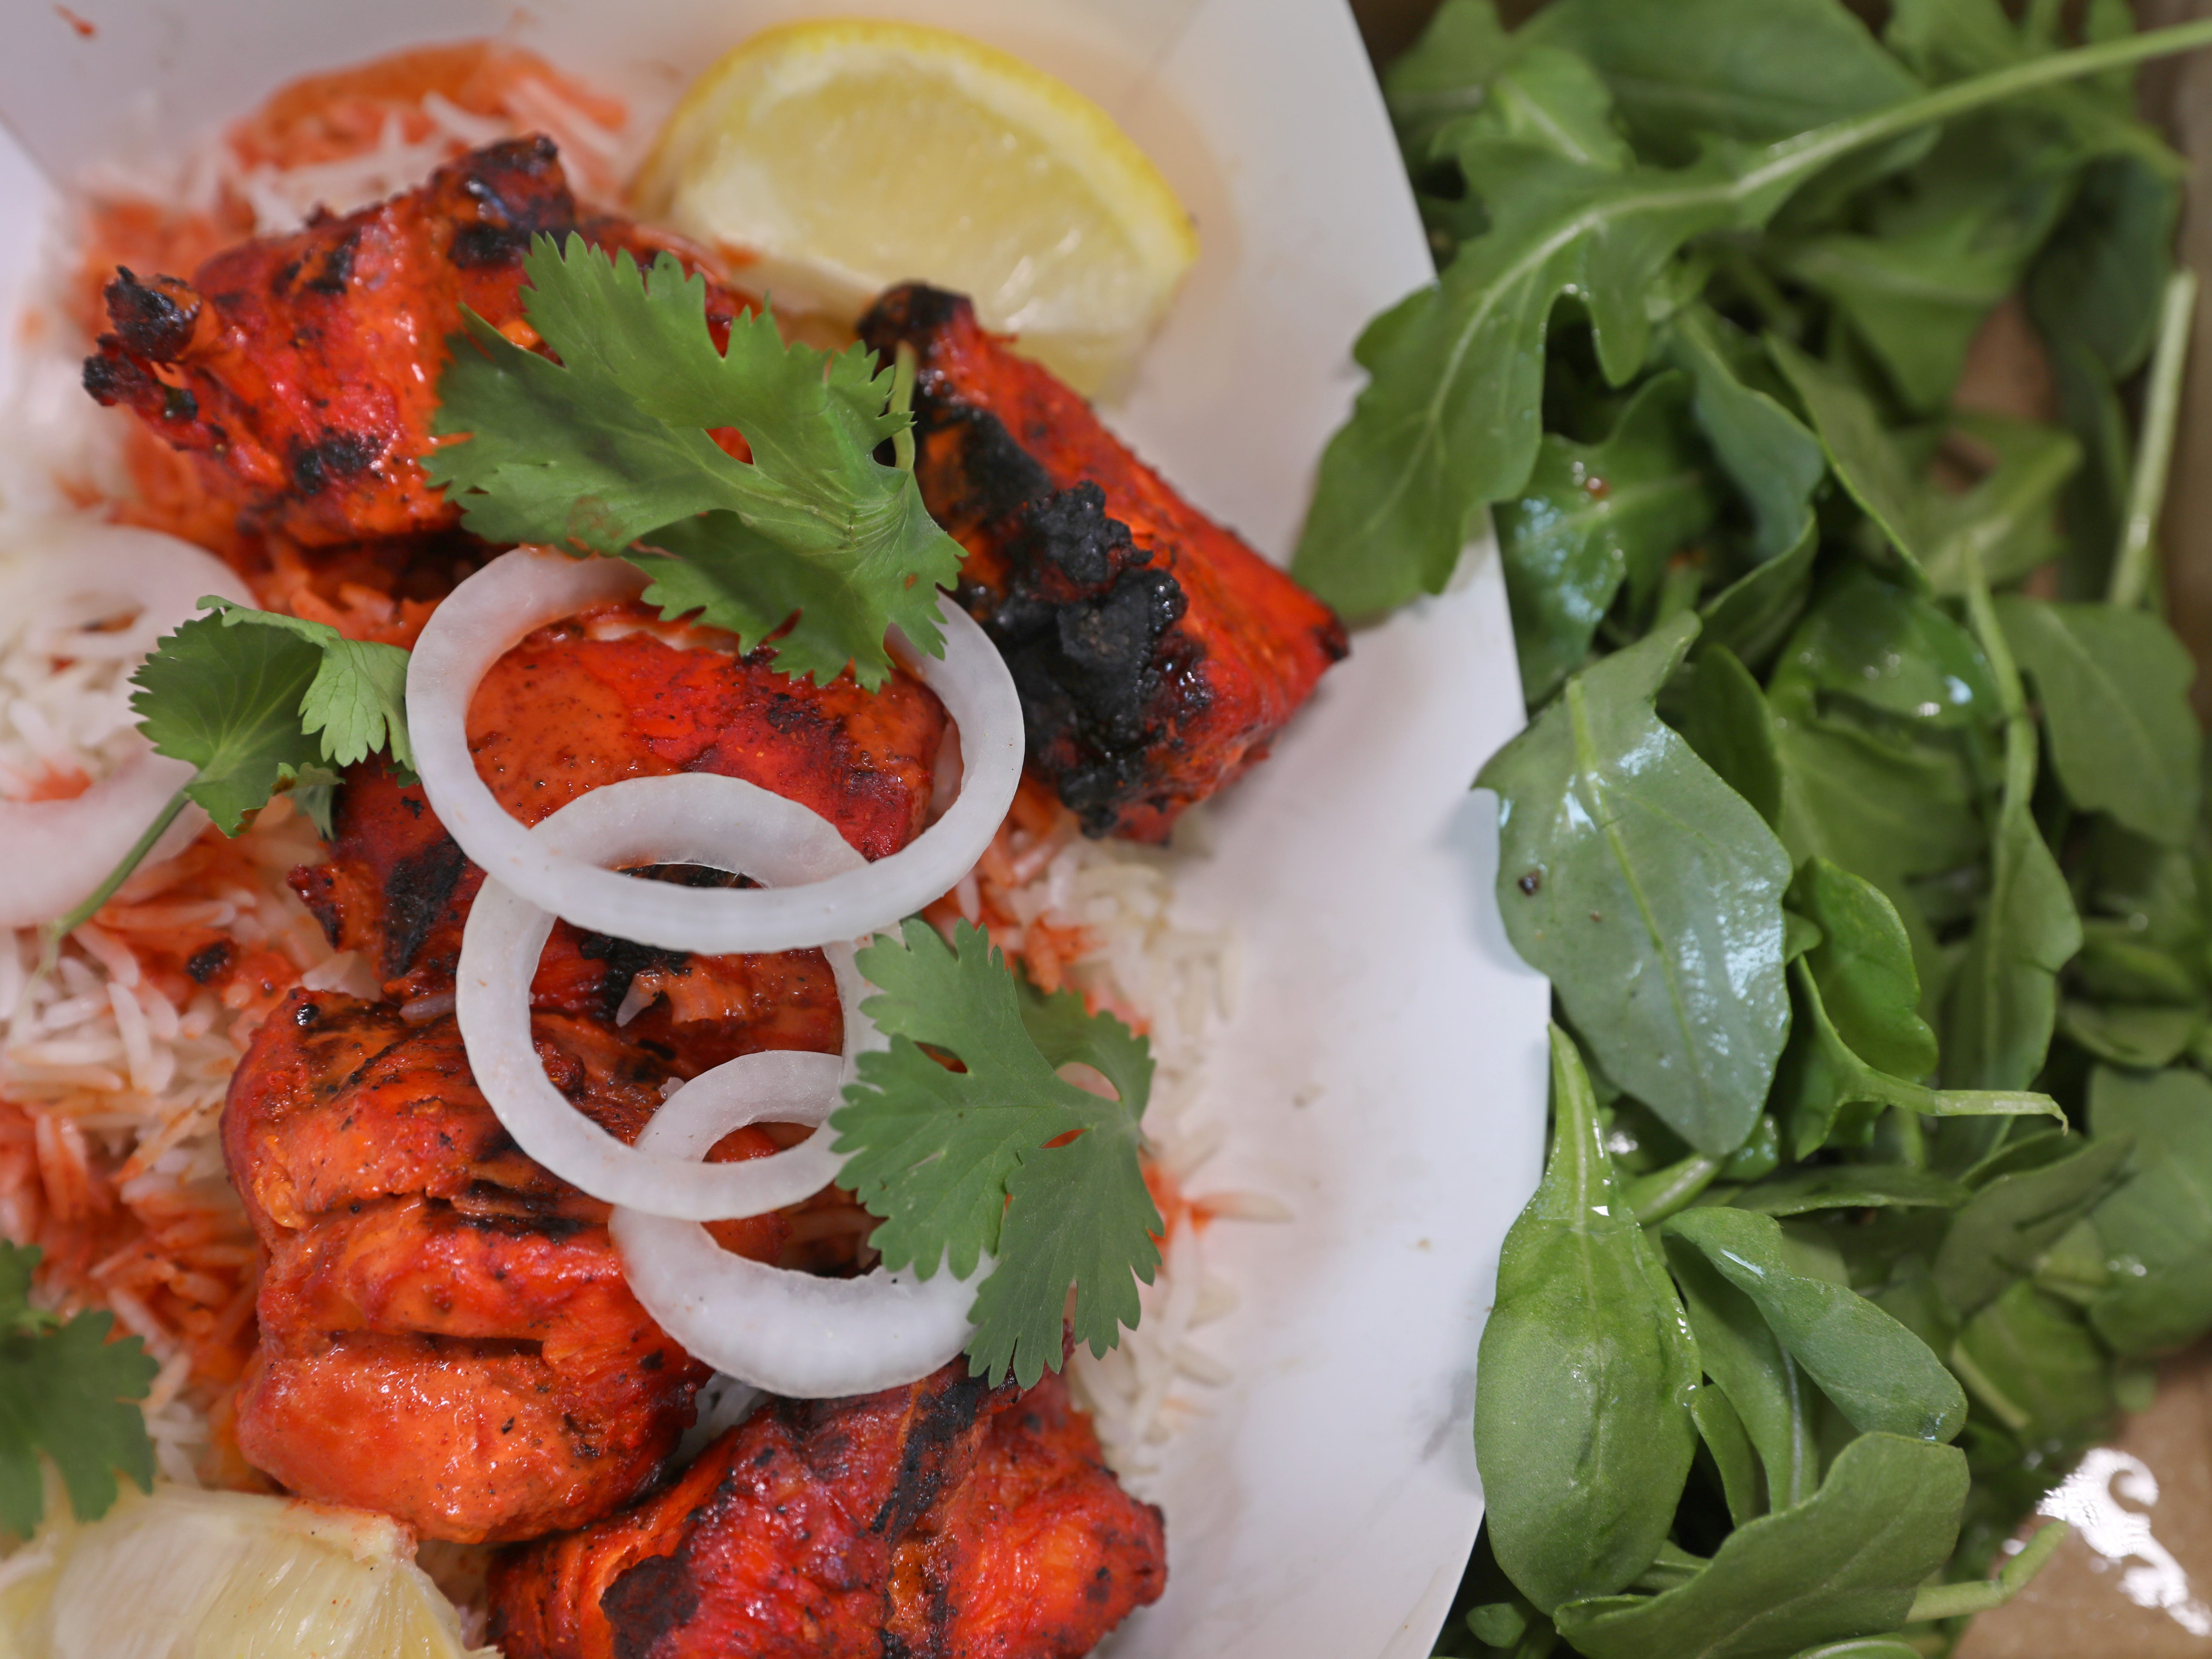 Tandoori chicken served with rice and a salad on the Taste the ROC food truck.